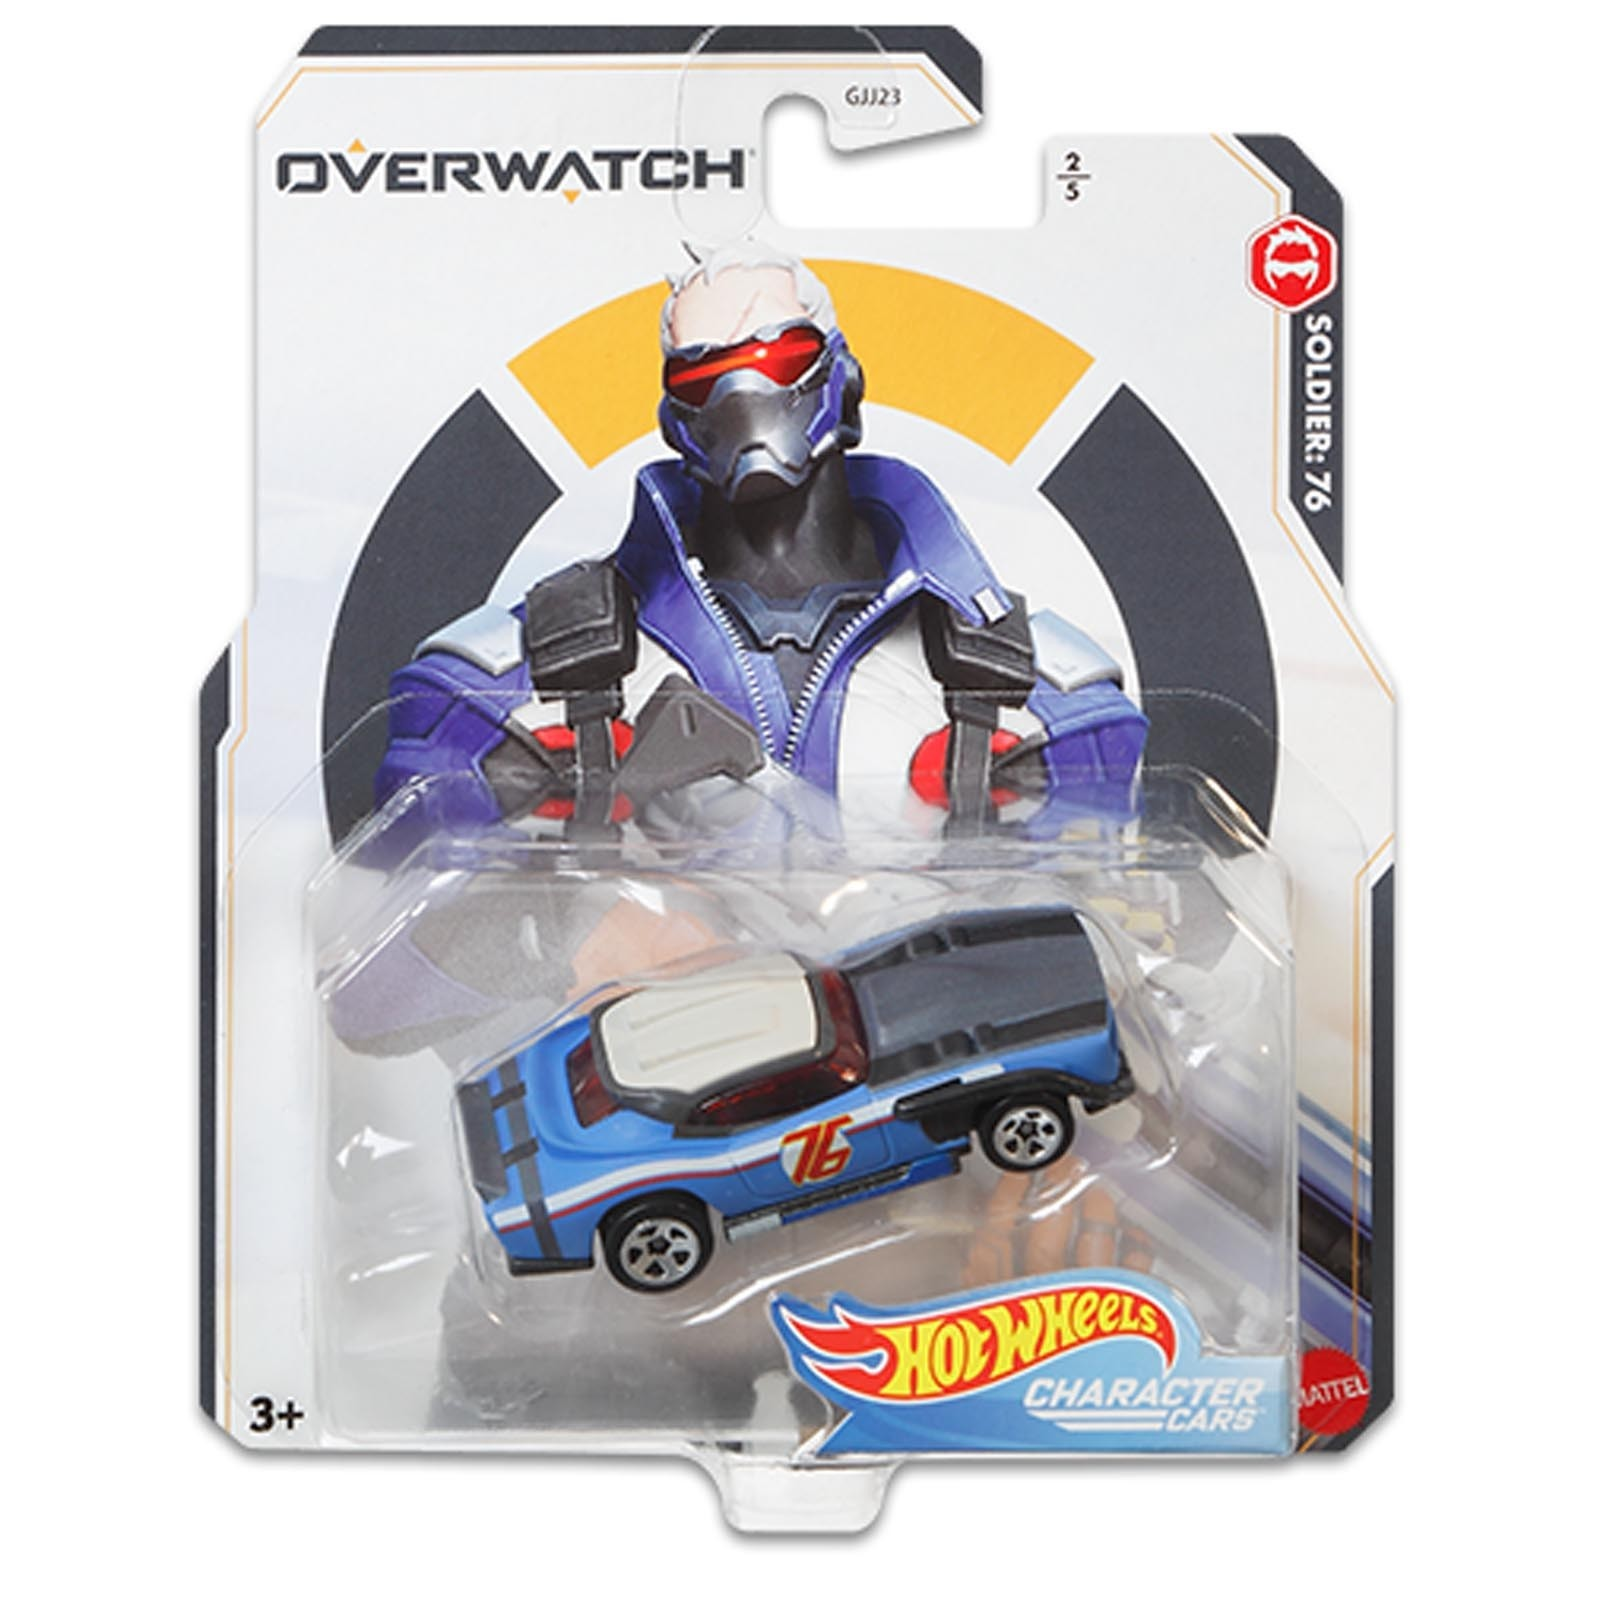 Hot Wheels - Soldier: 76 - Overwatch - Character Cars - GJJ24